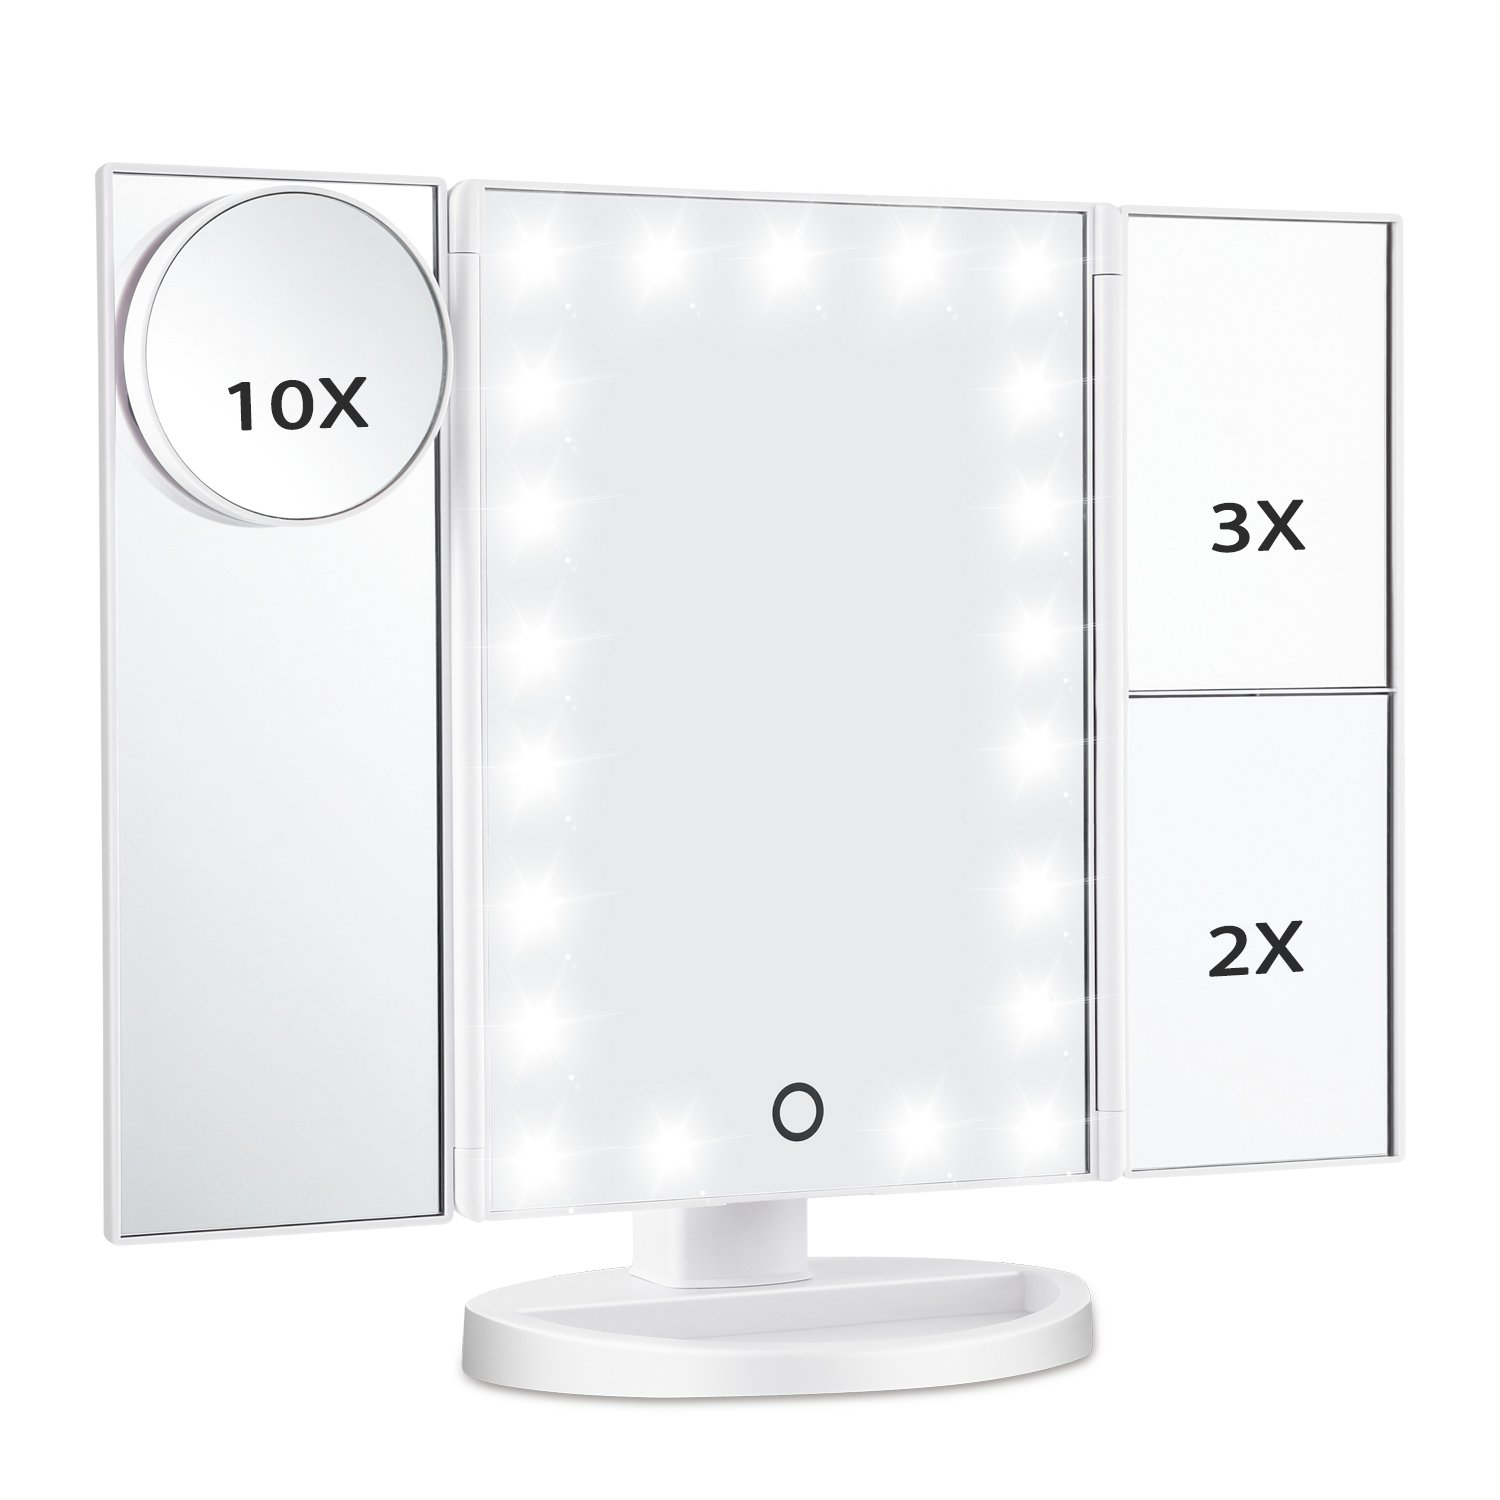 Magicfly Led Lighted Makeup Mirror, 10X 3X 2X 1X Magnifying Mirror 21 LED Tri-Fold Vanity Mirror Touch Screen 180° Adjustable Stand, Brightness Travel Beauty Mirror (White)